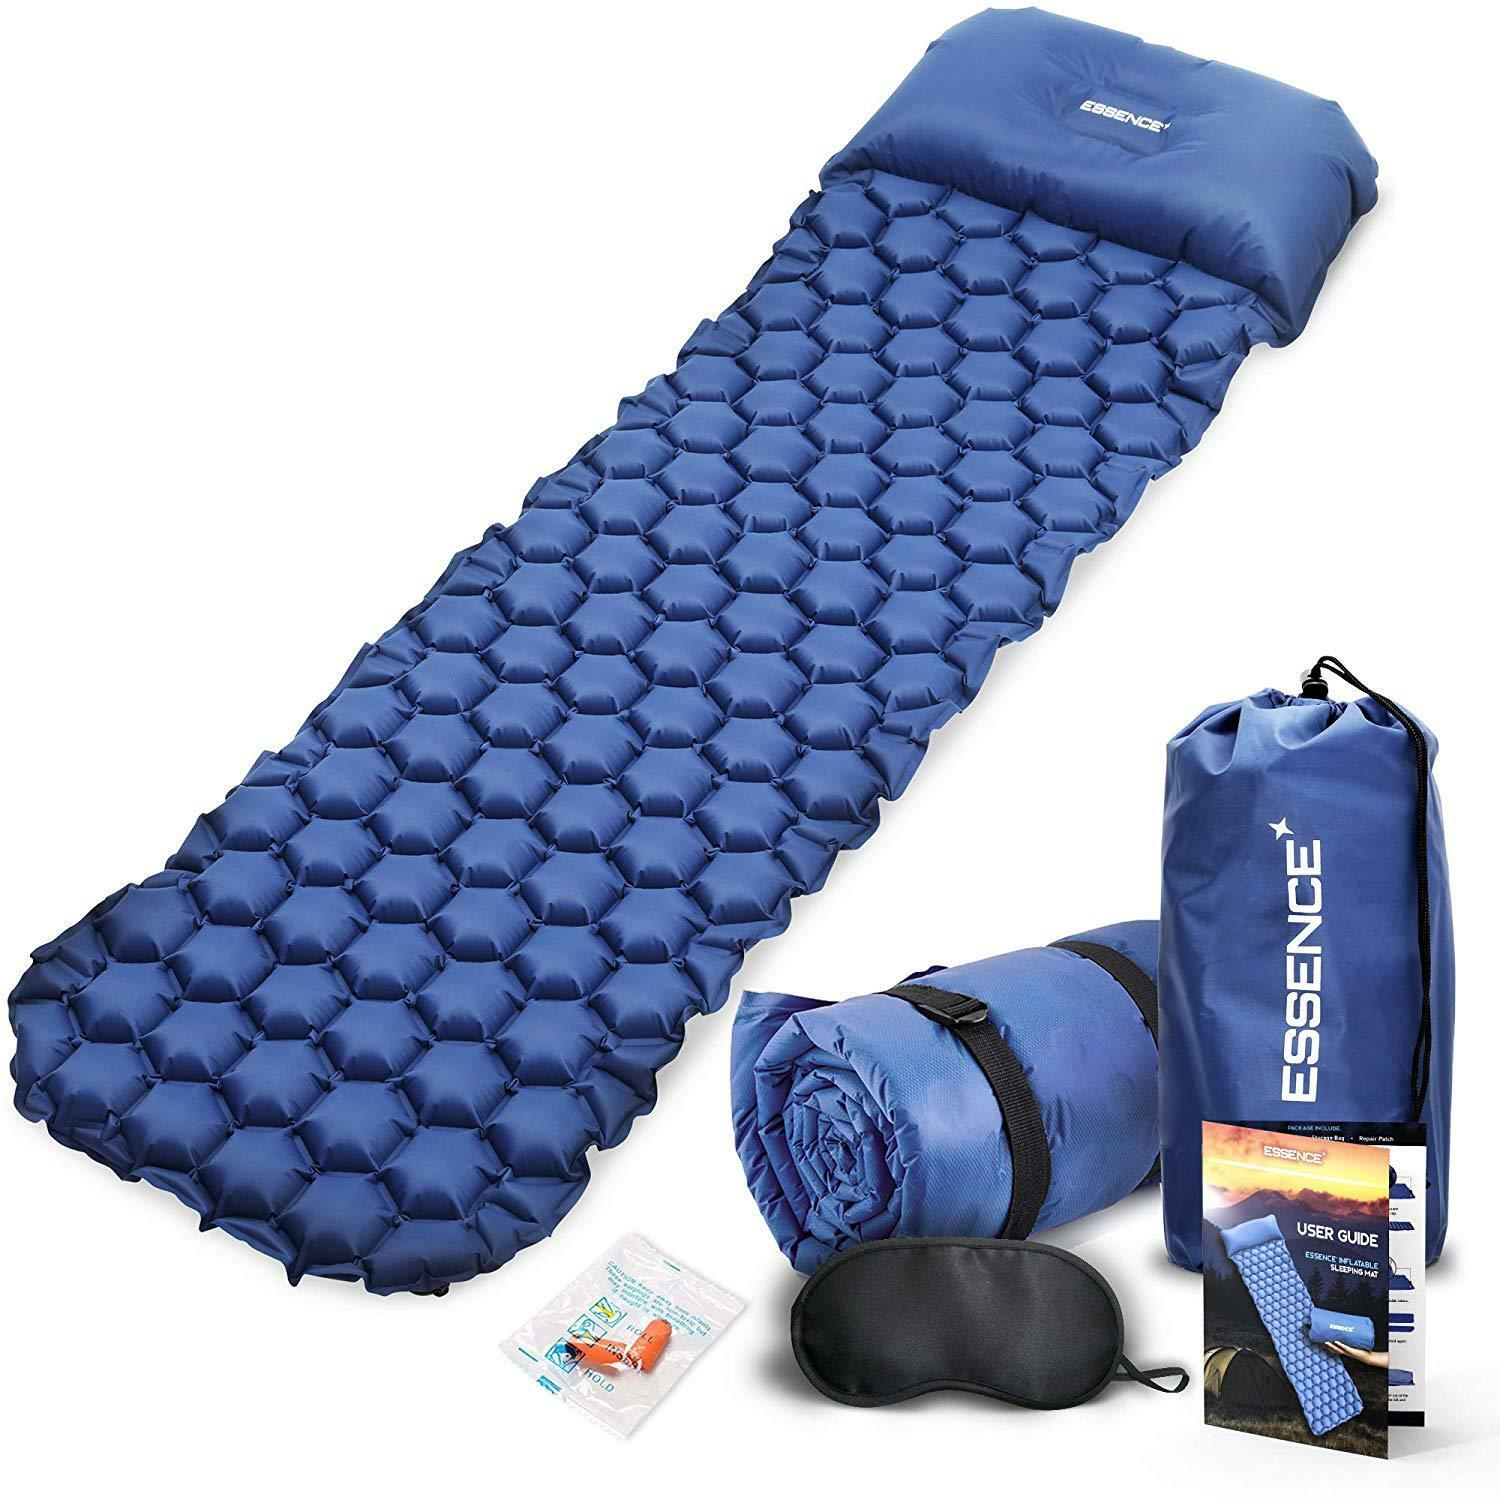 Sleeping Mat with Pillow-Ultralight  Self Inflating Camping Mattress Roll  hastened to see